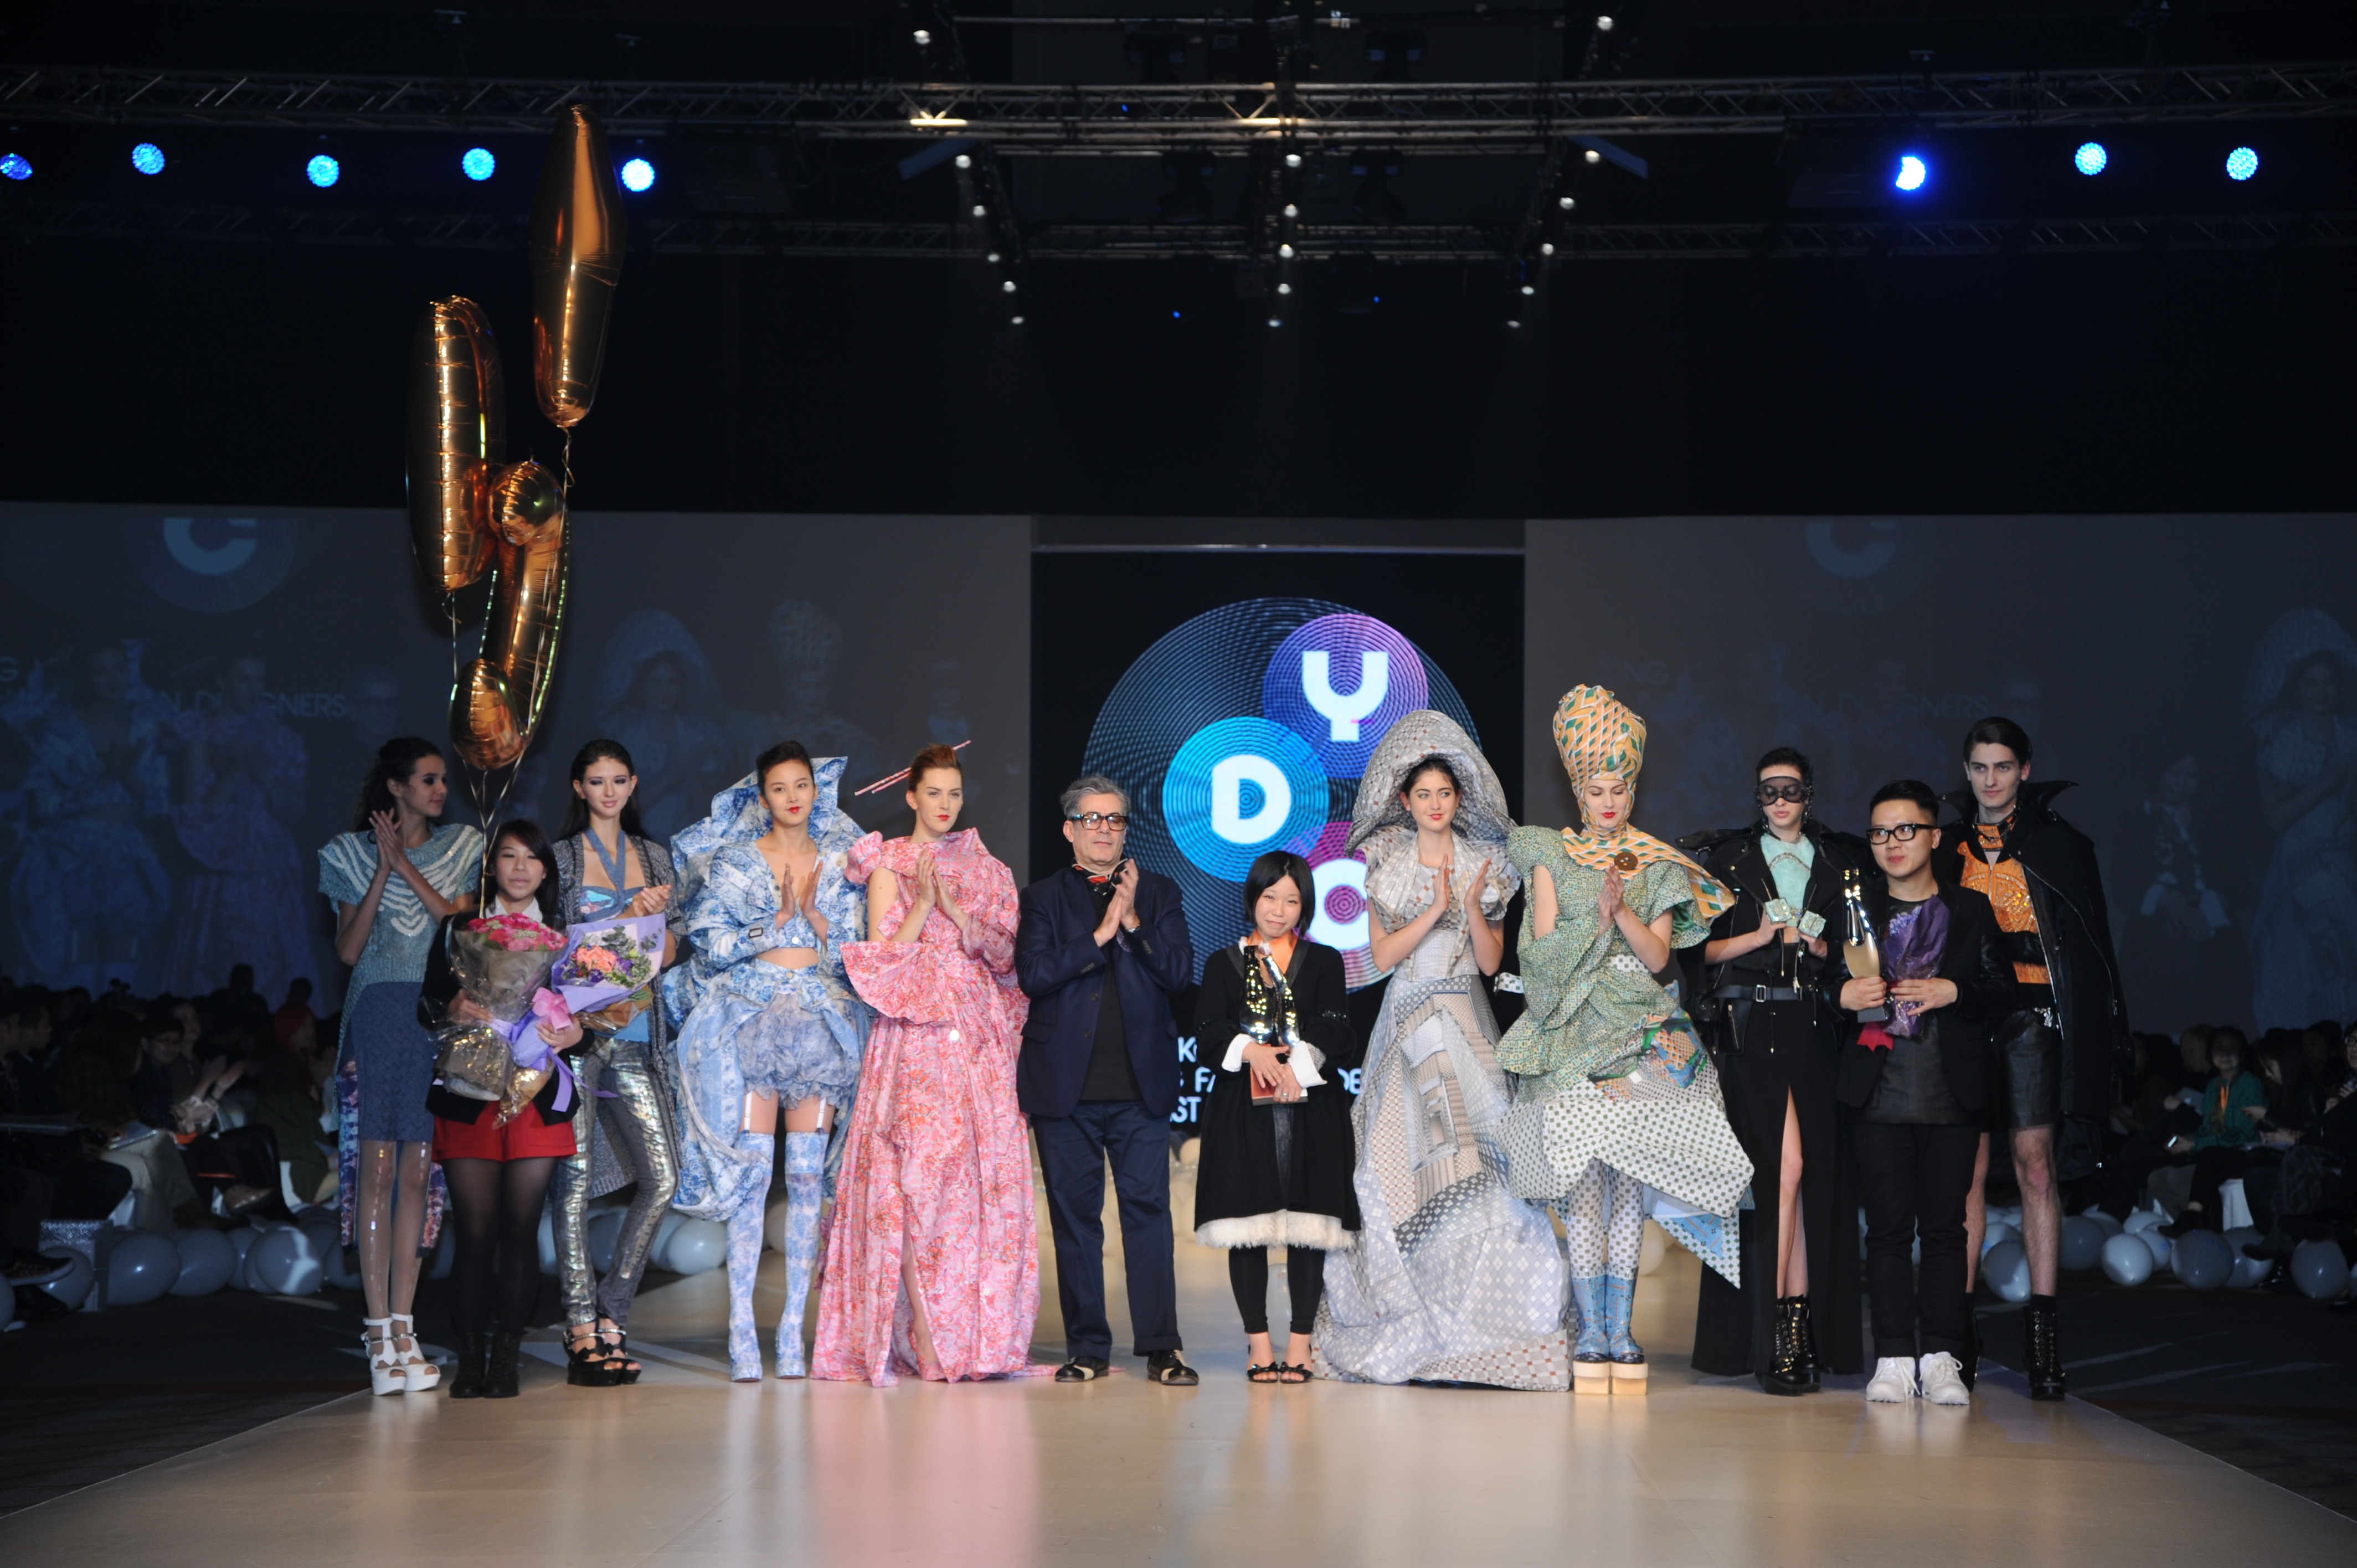 Hktdc Com Young Fashion Designers Contest Winners Announced Hktdc